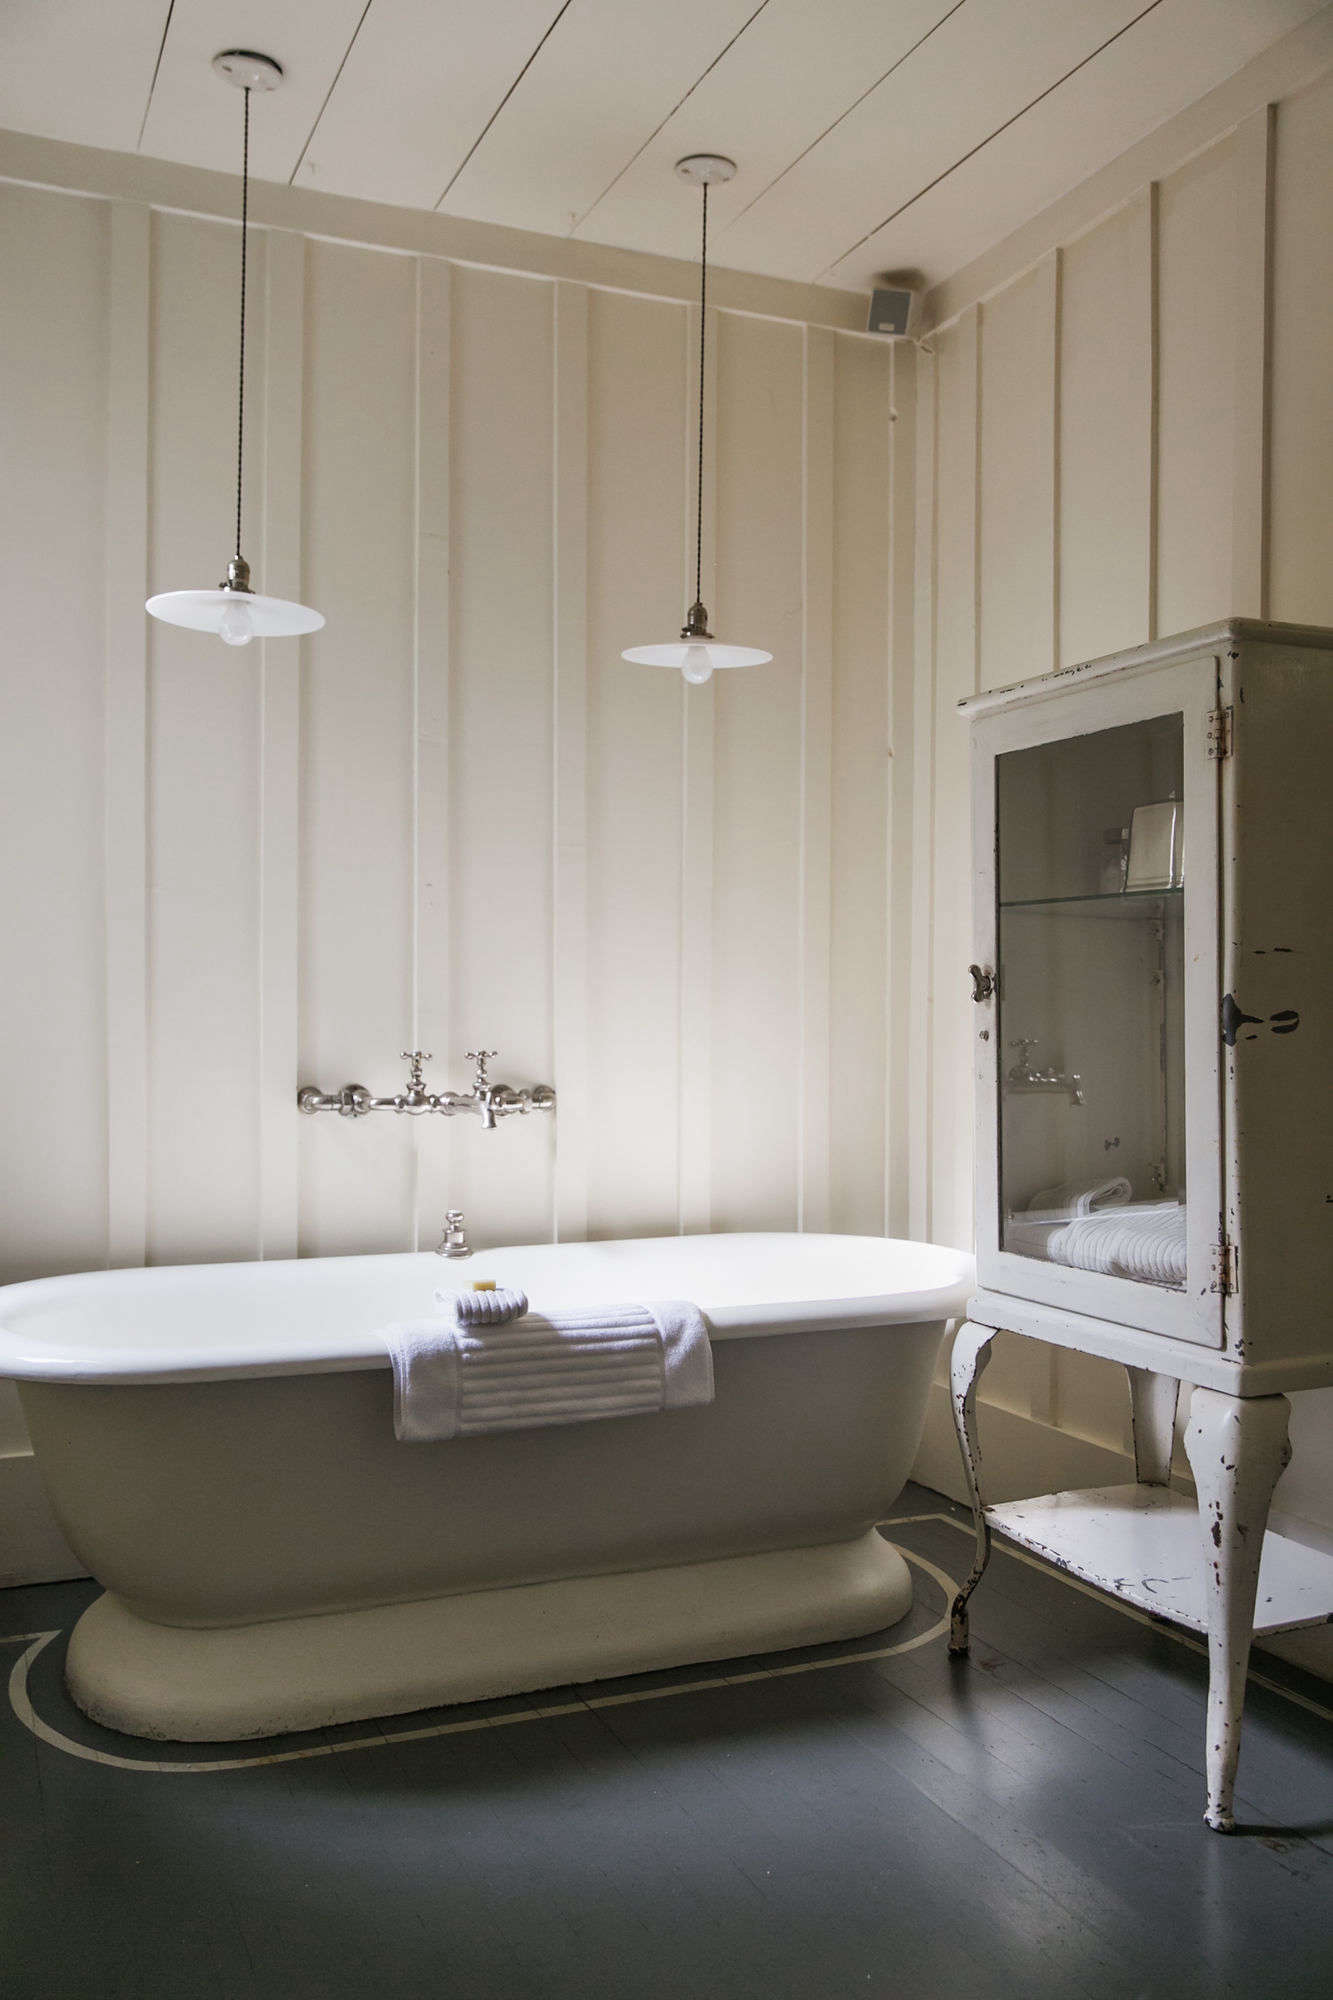 Photograph by Andria Lo for Remodelista from Steal This Look: Manka's Vintage Bath in Inverness, California.